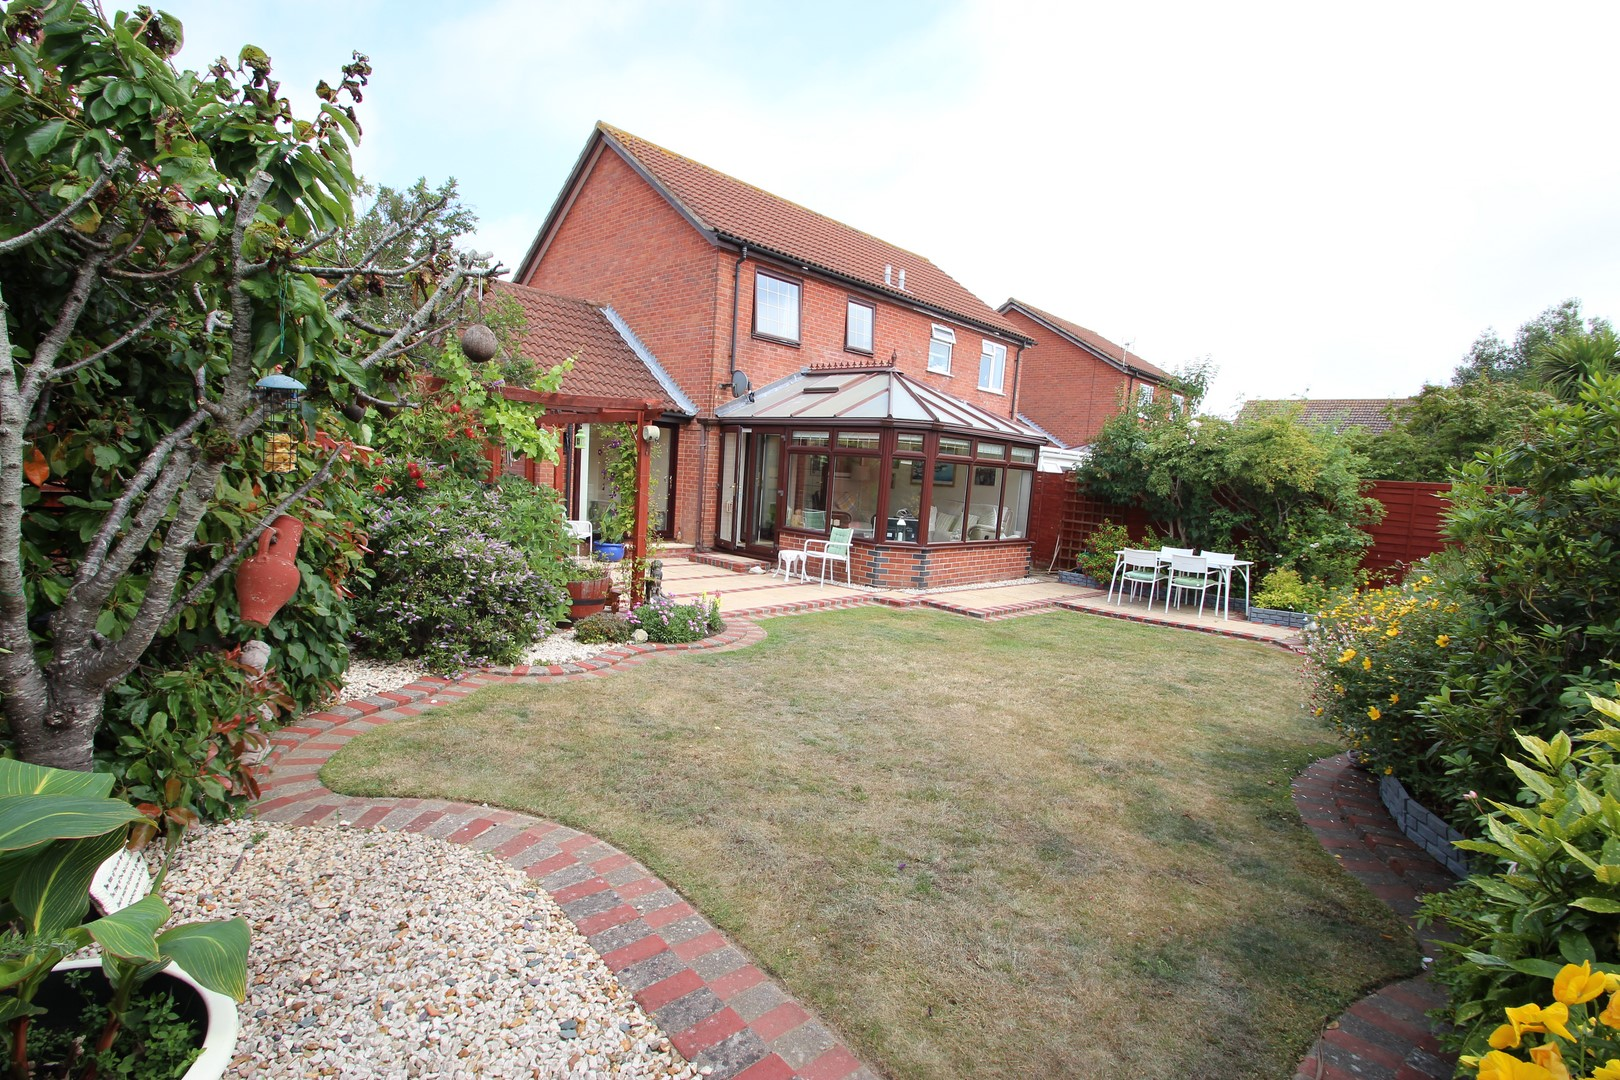 2 Bedroom House in Highcliffe